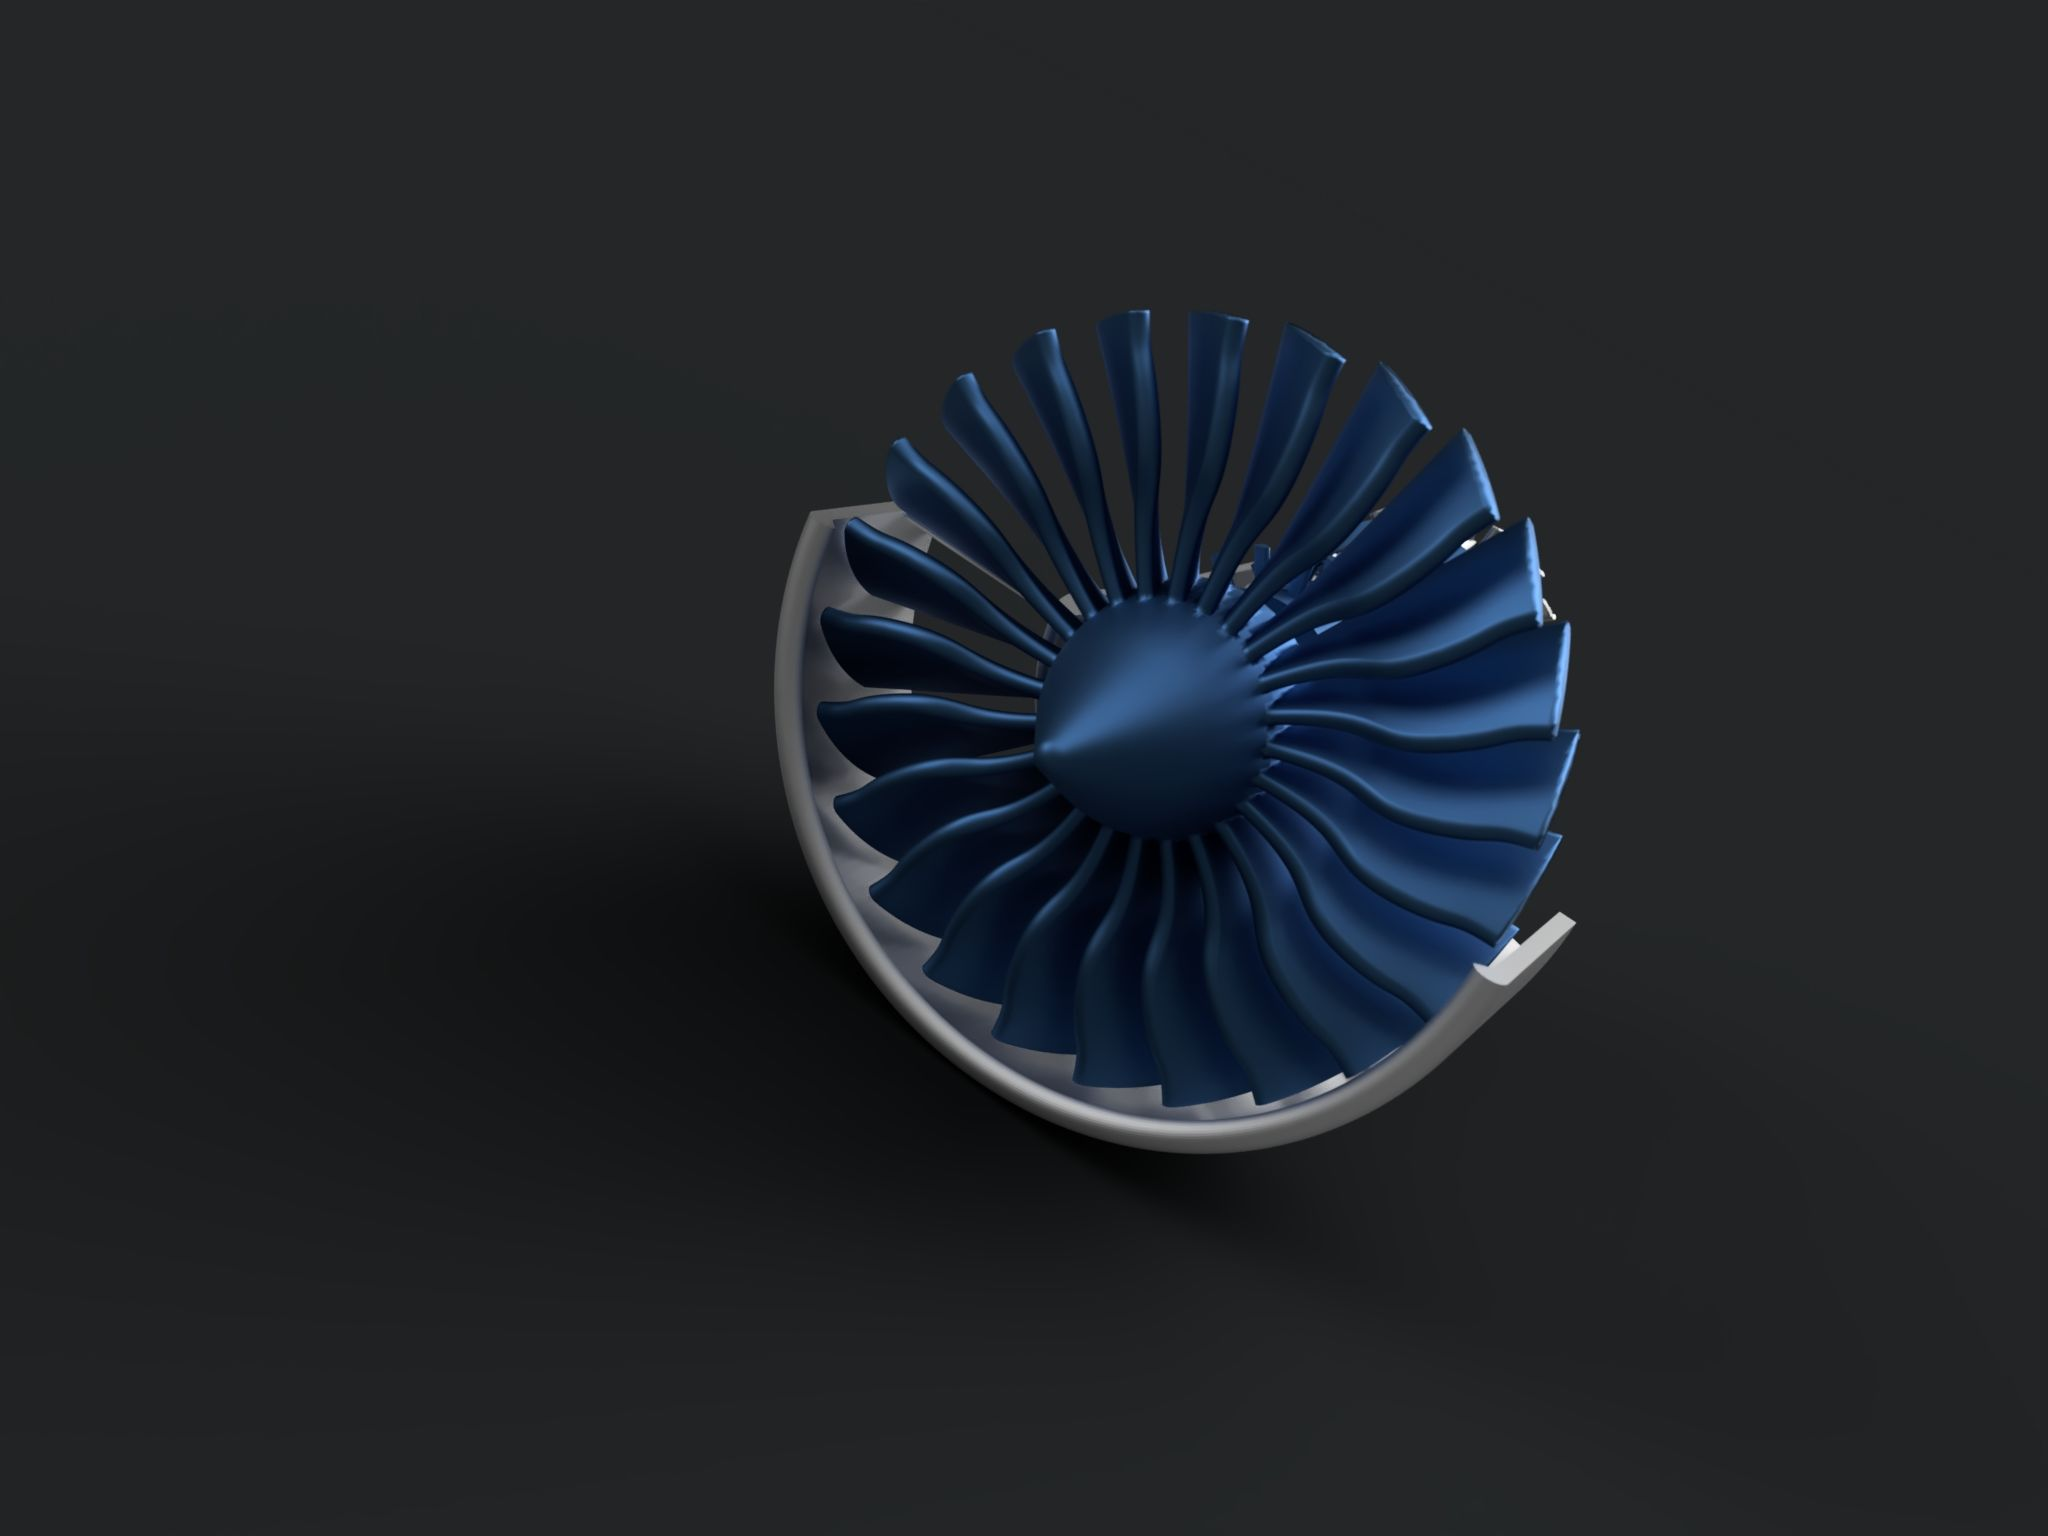 Jet-ge-parts-2019-feb-20-02-14-56pm-000-customizedview8661585657-jpg-3500-3500